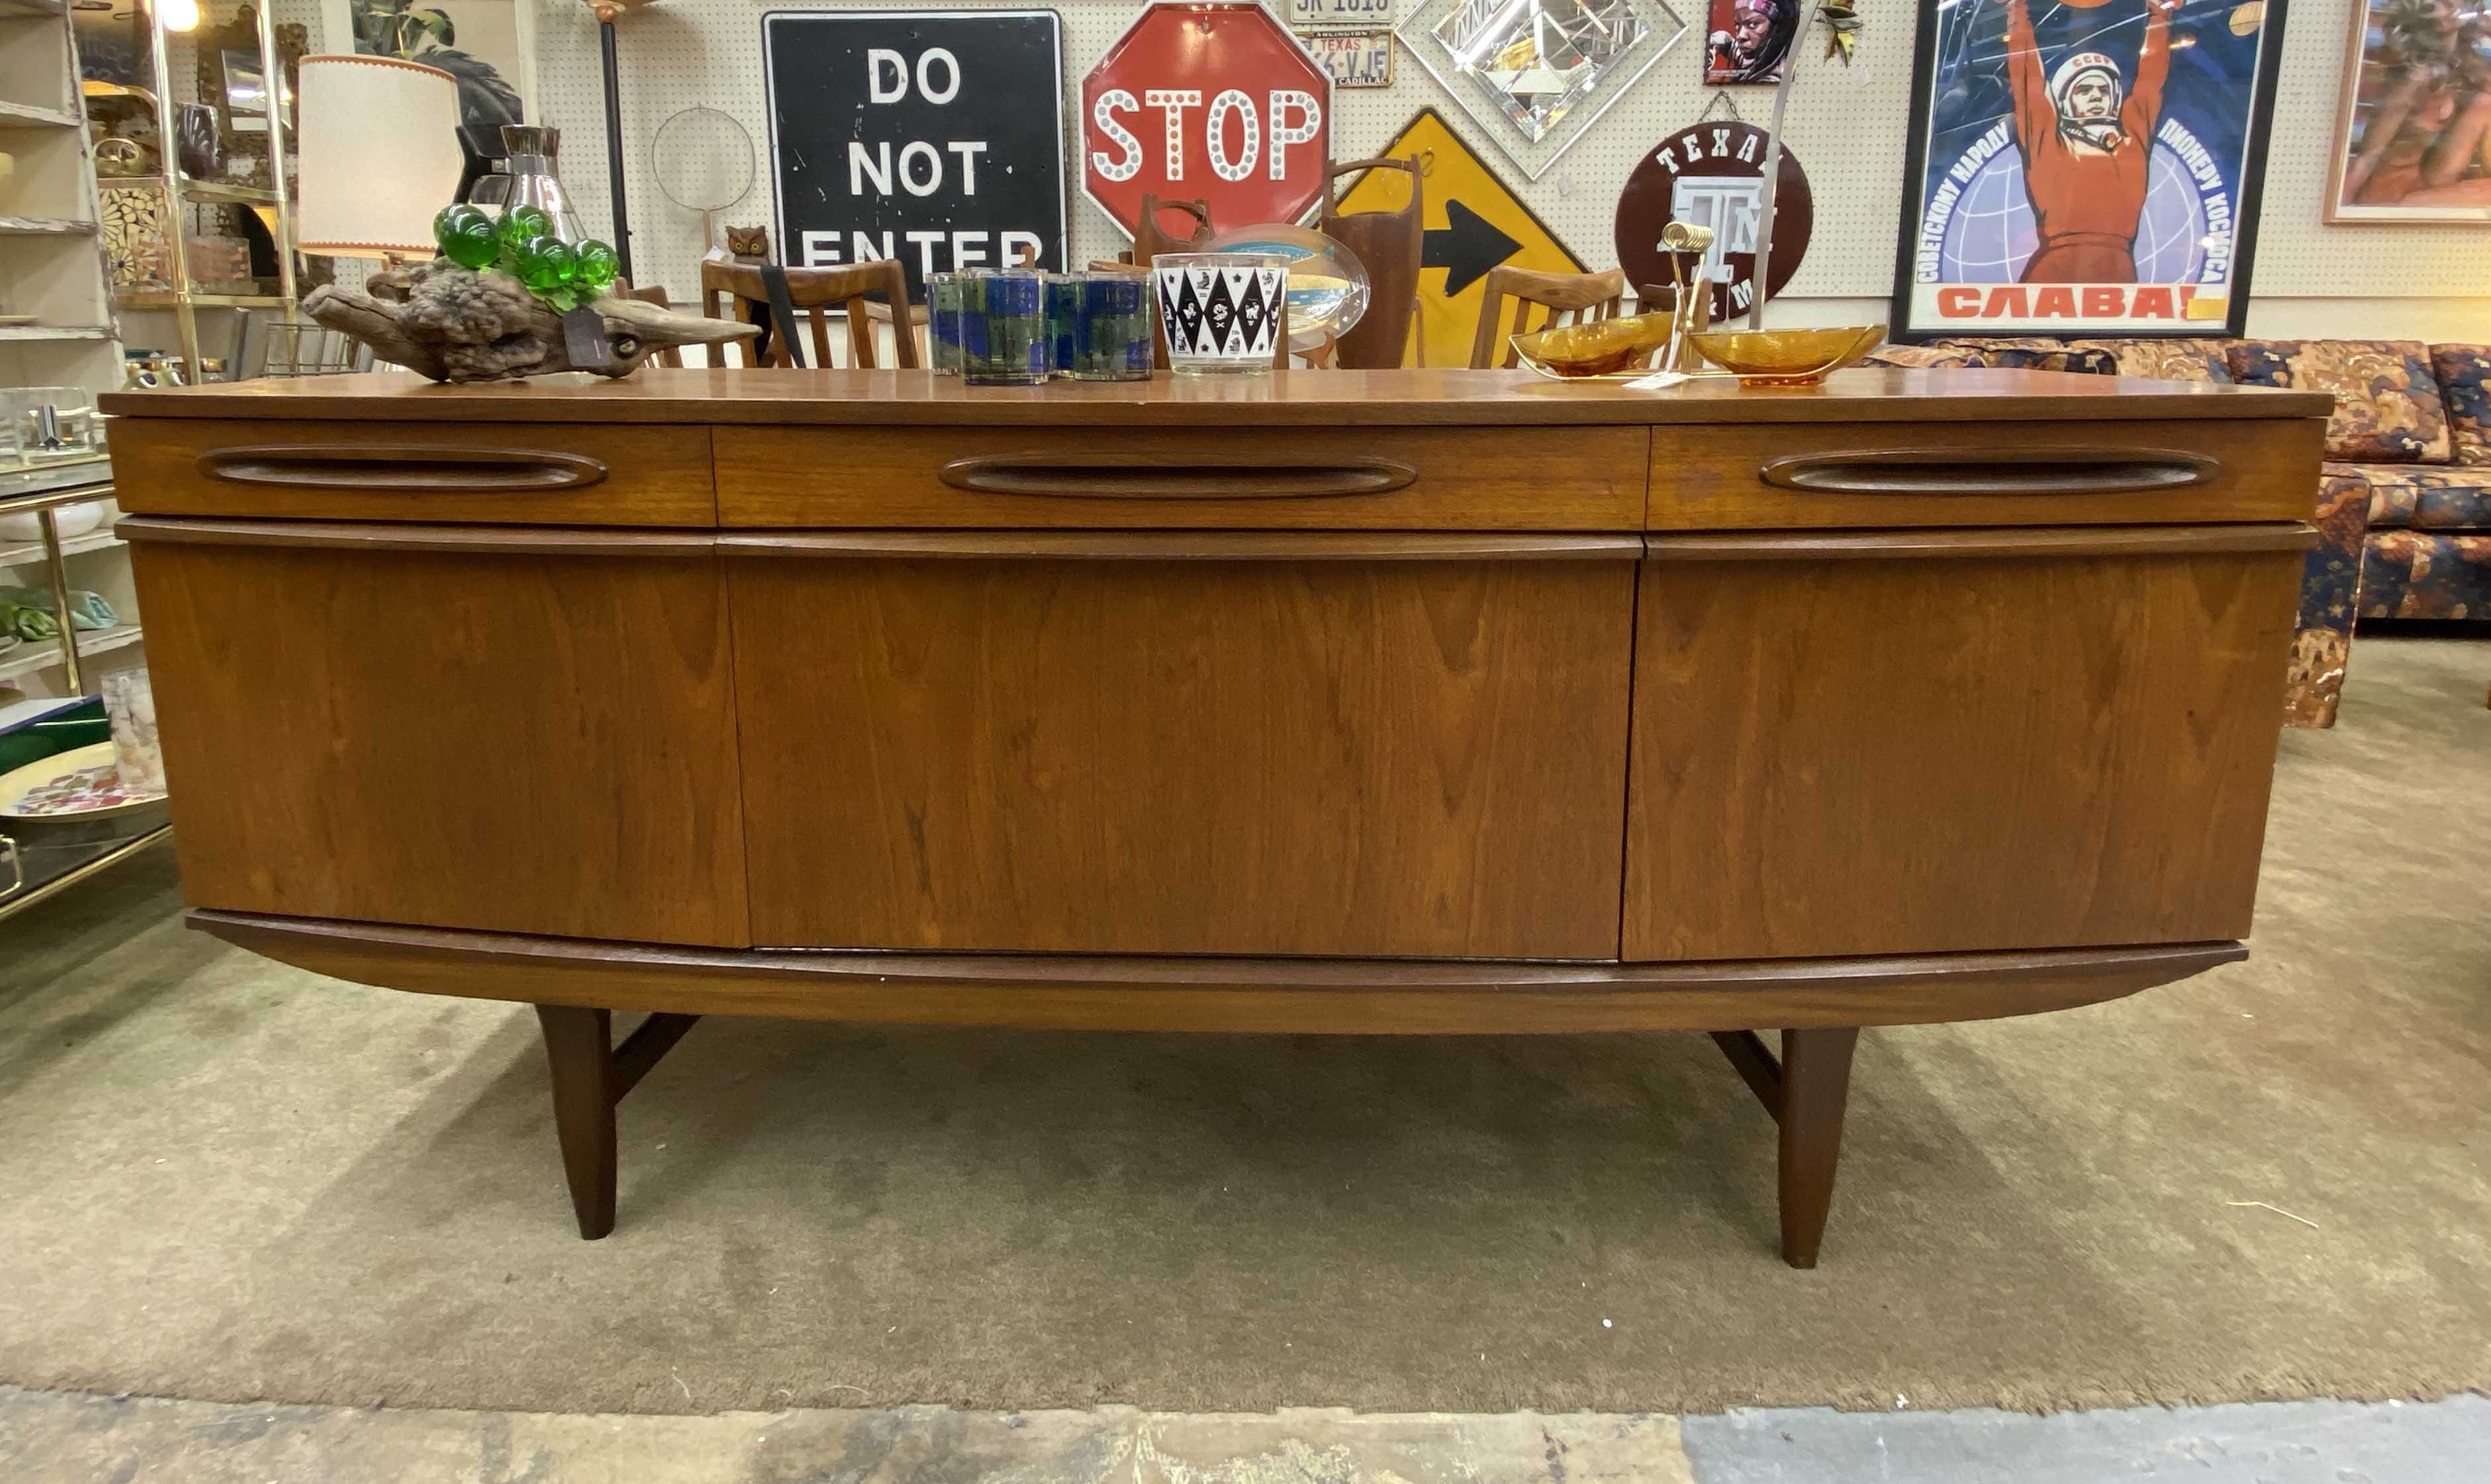 Mid Century Bow Front Teak Credenza With Drop Front Bar On Sale 72 Wide Was 1475 Sale Price 1185 Mid Ce Teak Credenza Mid Century Furniture Mid Century